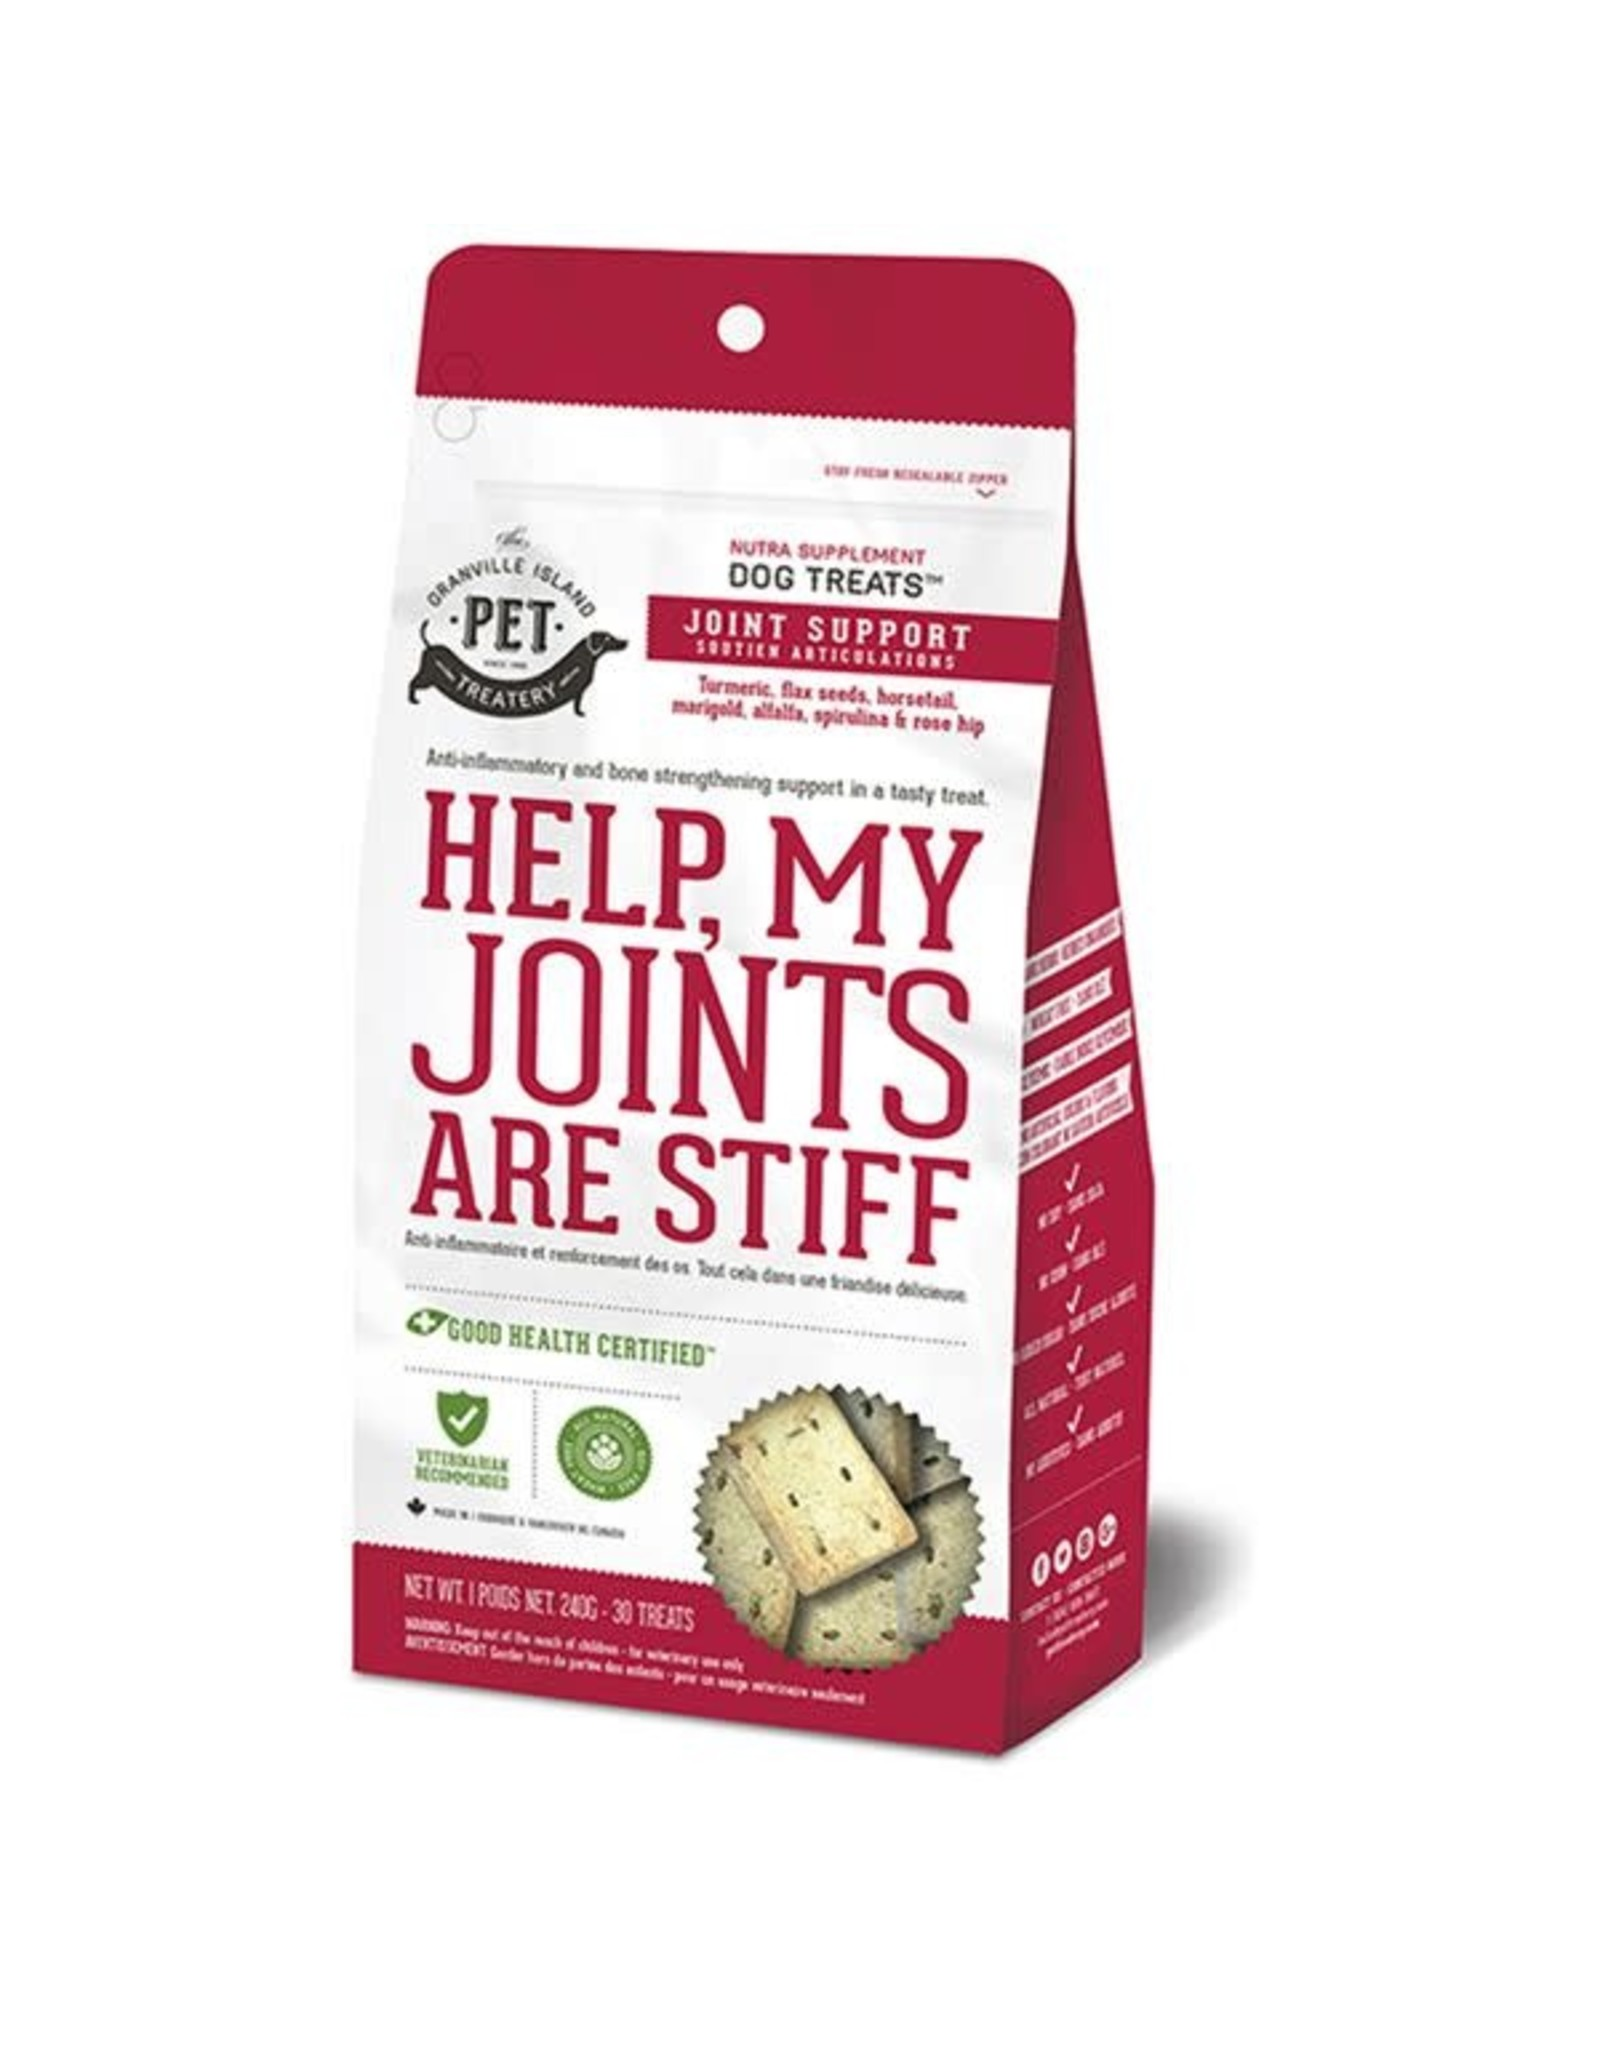 Granville Island Pet Treatery Granville Joint Support Treats Help My Joints are Stiff Dog 1X240G